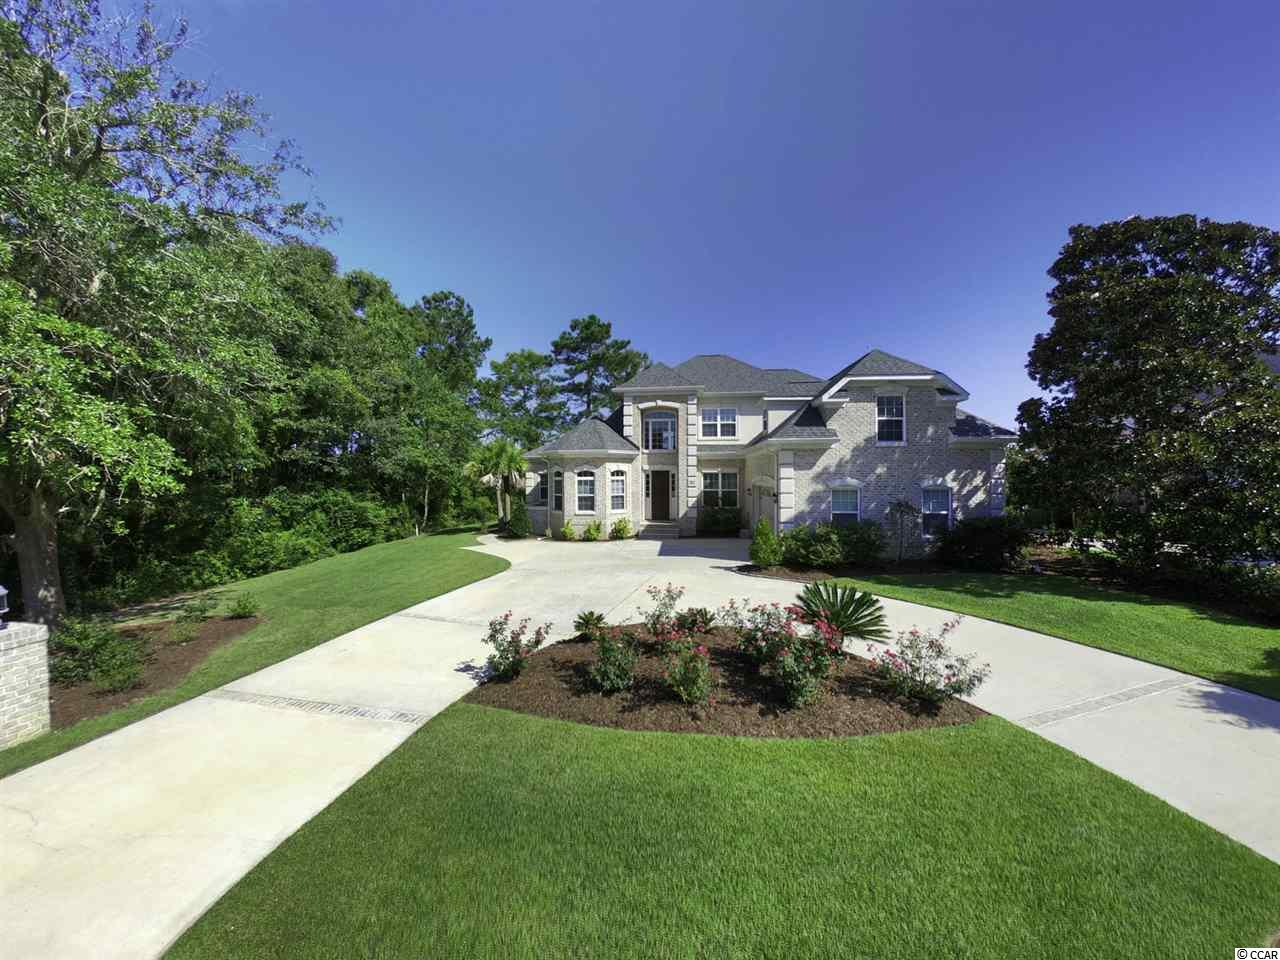 Welcome Home to this custom built 4-bedroom 3.5 bath brick home with stucco accents in Heritage Plantation. The majestic views of the marsh and the Waccamaw River from your new home will not disappoint! The attention to detail is a must see with crown molding throughout, tray ceilings and detailed woodwork. From the minute you drive into the circular driveway and walk into the two-story entry, you immediately feel relaxed and at home. Engineered hardwoods and tile throughout the main floor. Open kitchen with solid wood cabinets, range with double oven plus oven/microwave wall unit, granite countertops, tile backsplash, eat in area, walk in pantry, large kitchen island, wine cooler and views of the marsh and Waccamaw River. Have your morning coffee on the screened in porch with built in sink and small refrigerator. Step outside for lunch on the patio with built in gas grill. Master bedroom is on the first floor with TWO custom designed walk in closets, frameless shower with a floating granite seat, double sinks and a jetted tub with a window. Finish out the first floor with a beautiful study, half bath, oversized two car garage and laundry room with cabinets and sink. Take the wood stairs to the upstairs where you will find a relaxing sitting room with views of the river. There are sliding glass doors to the 2nd floor deck that runs most of the back of the house. Watch the amazing sunsets! There are three additional bedrooms upstairs. Two bedrooms share a bathroom. One of these bedrooms has access to the deck. Your guests will enjoy the quiet of the upstairs with the views and the sunsets! An additional bedroom has a private bathroom. All this and an unfinished walk in storage area above the garage. The possibilities for this room are endless! Did I mention the view of the Waccamaw River! Sit and have your coffee while taking in the majestic view of the marsh and the Waccamaw River. You will not be disappointed. Some features to mention are the lifetime warranty gutt